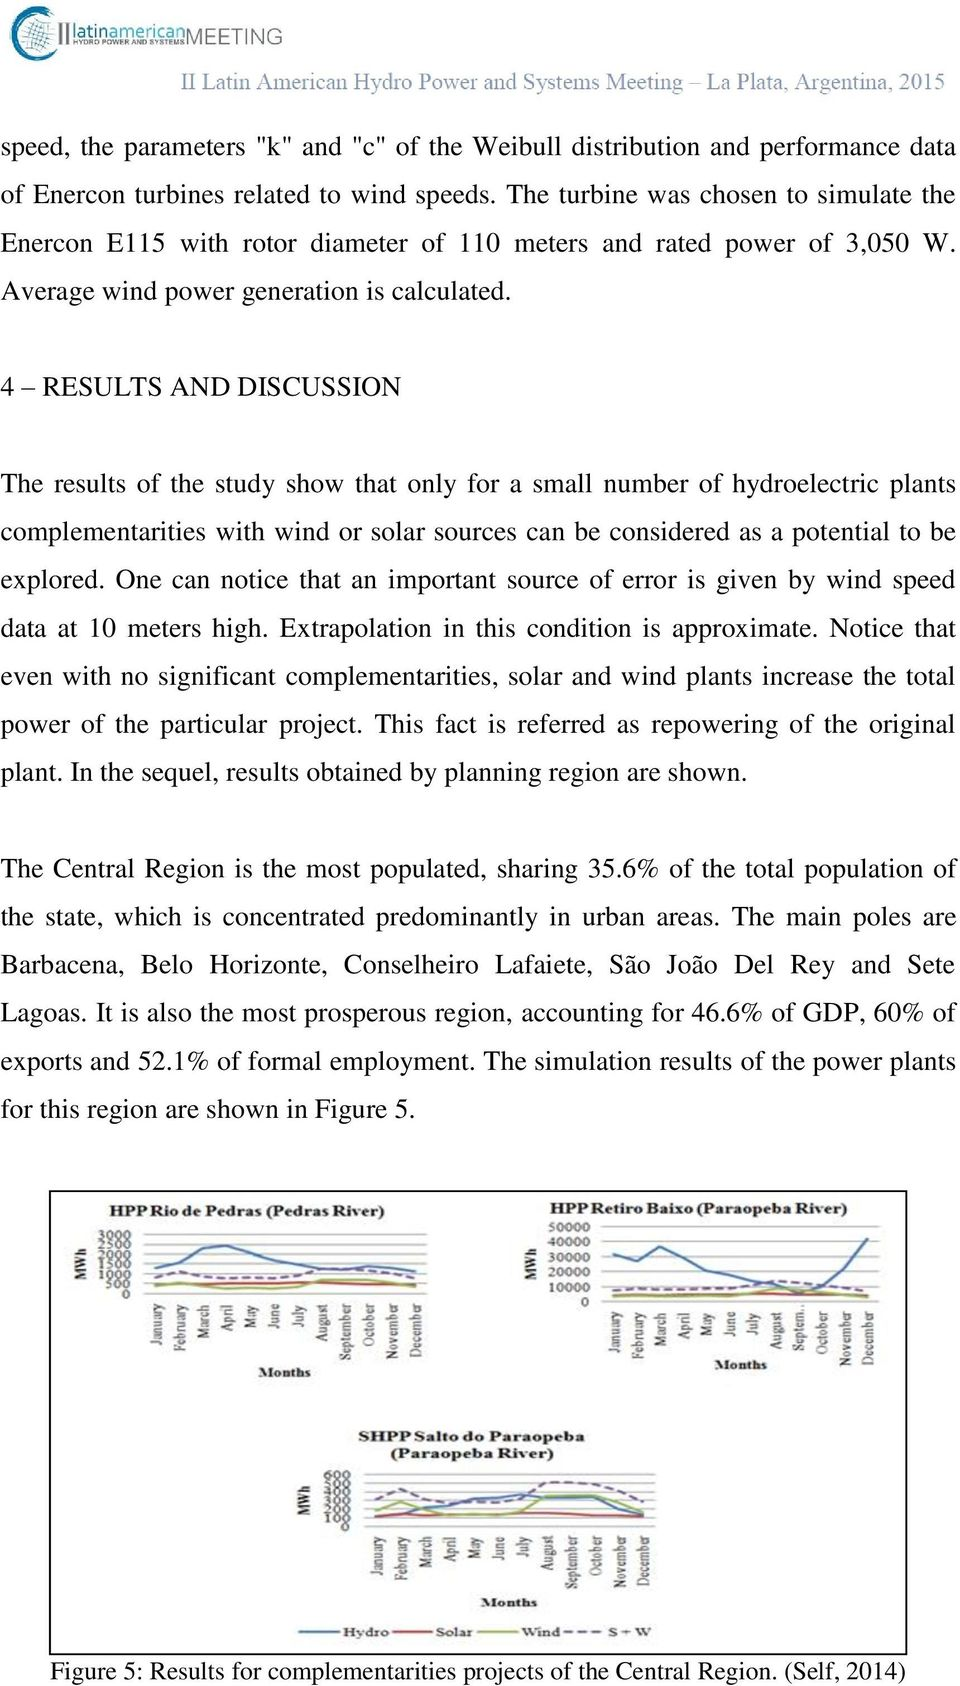 4 RESULTS AND DISCUSSION The results of the study show that only for a small number of hydroelectric plants complementarities with wind or solar sources can be considered as a potential to be